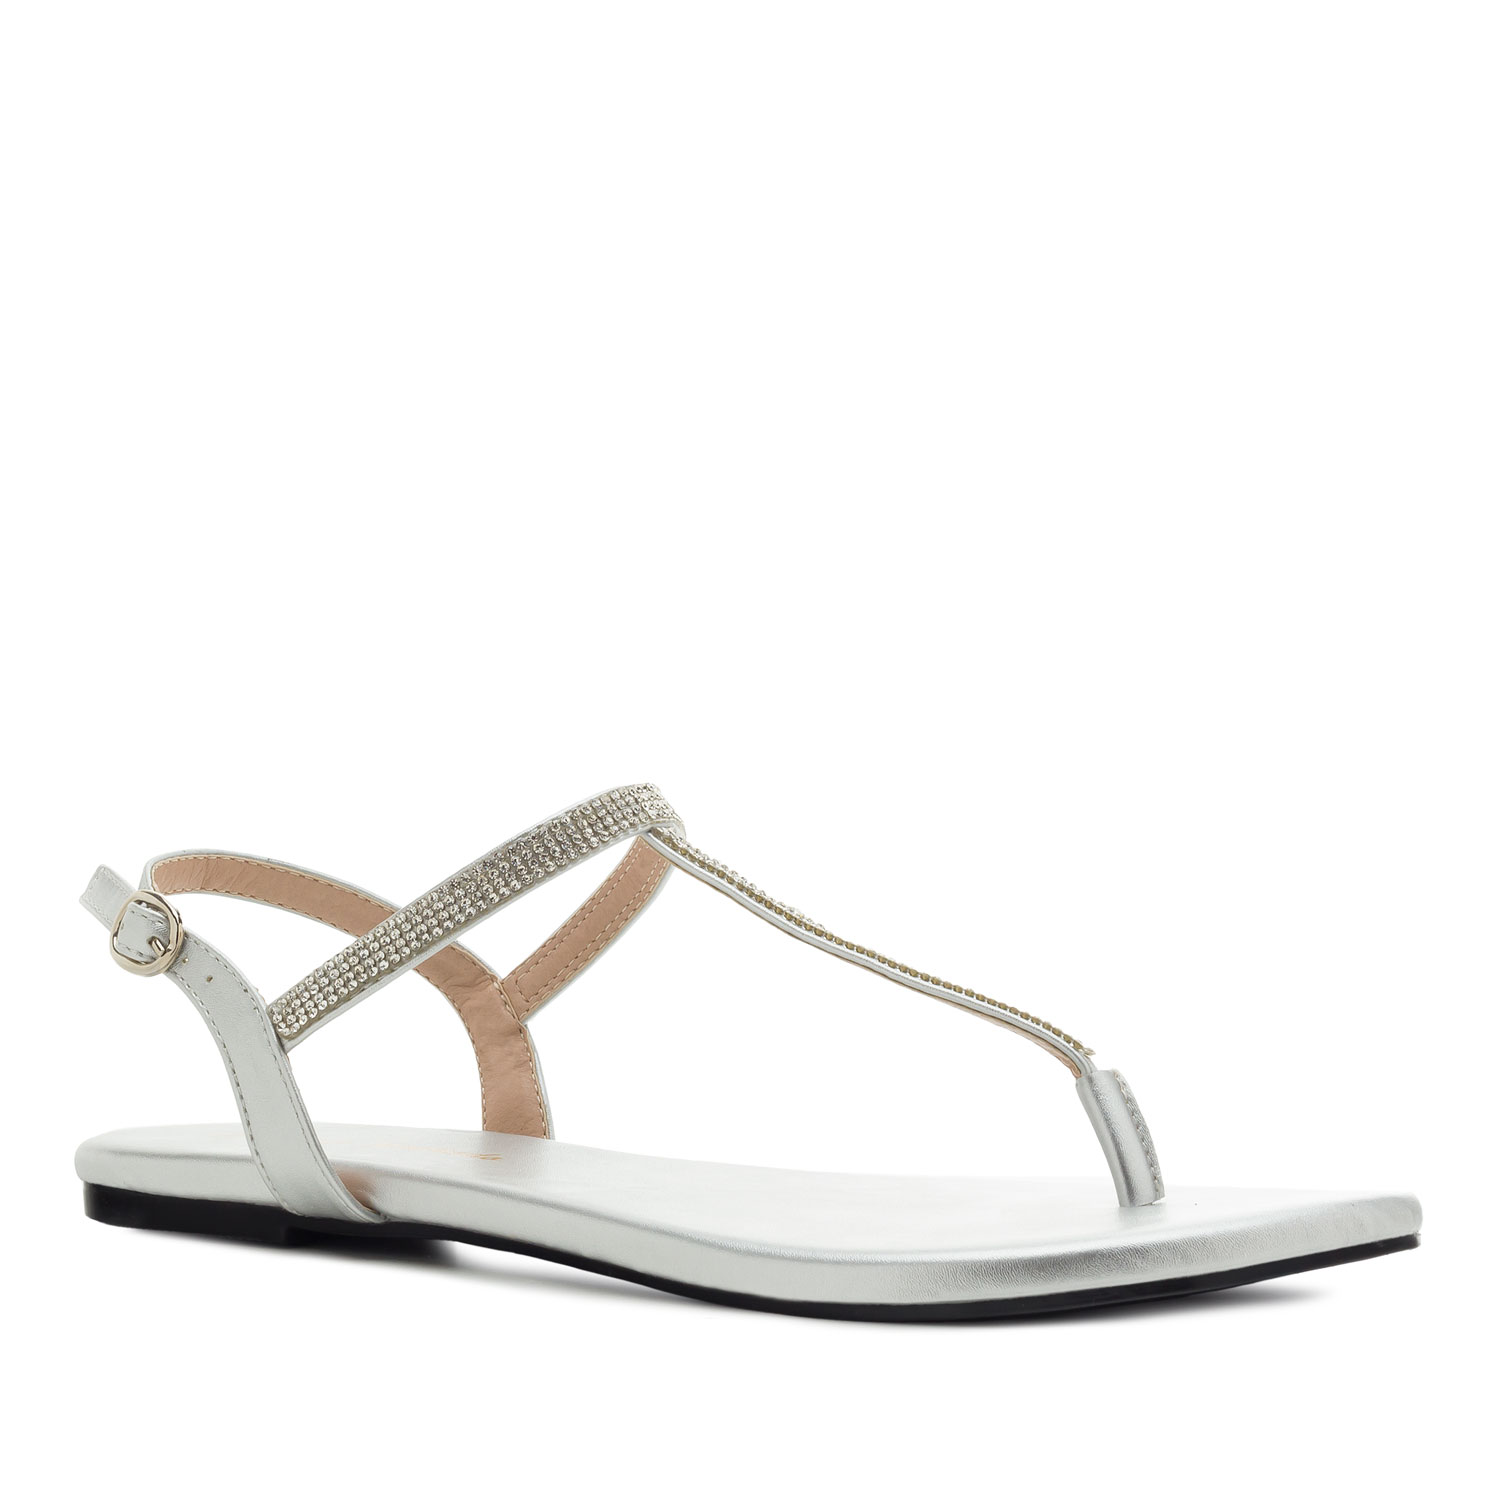 T-Bar Flat Sandals in Silver faux Leather with Strass